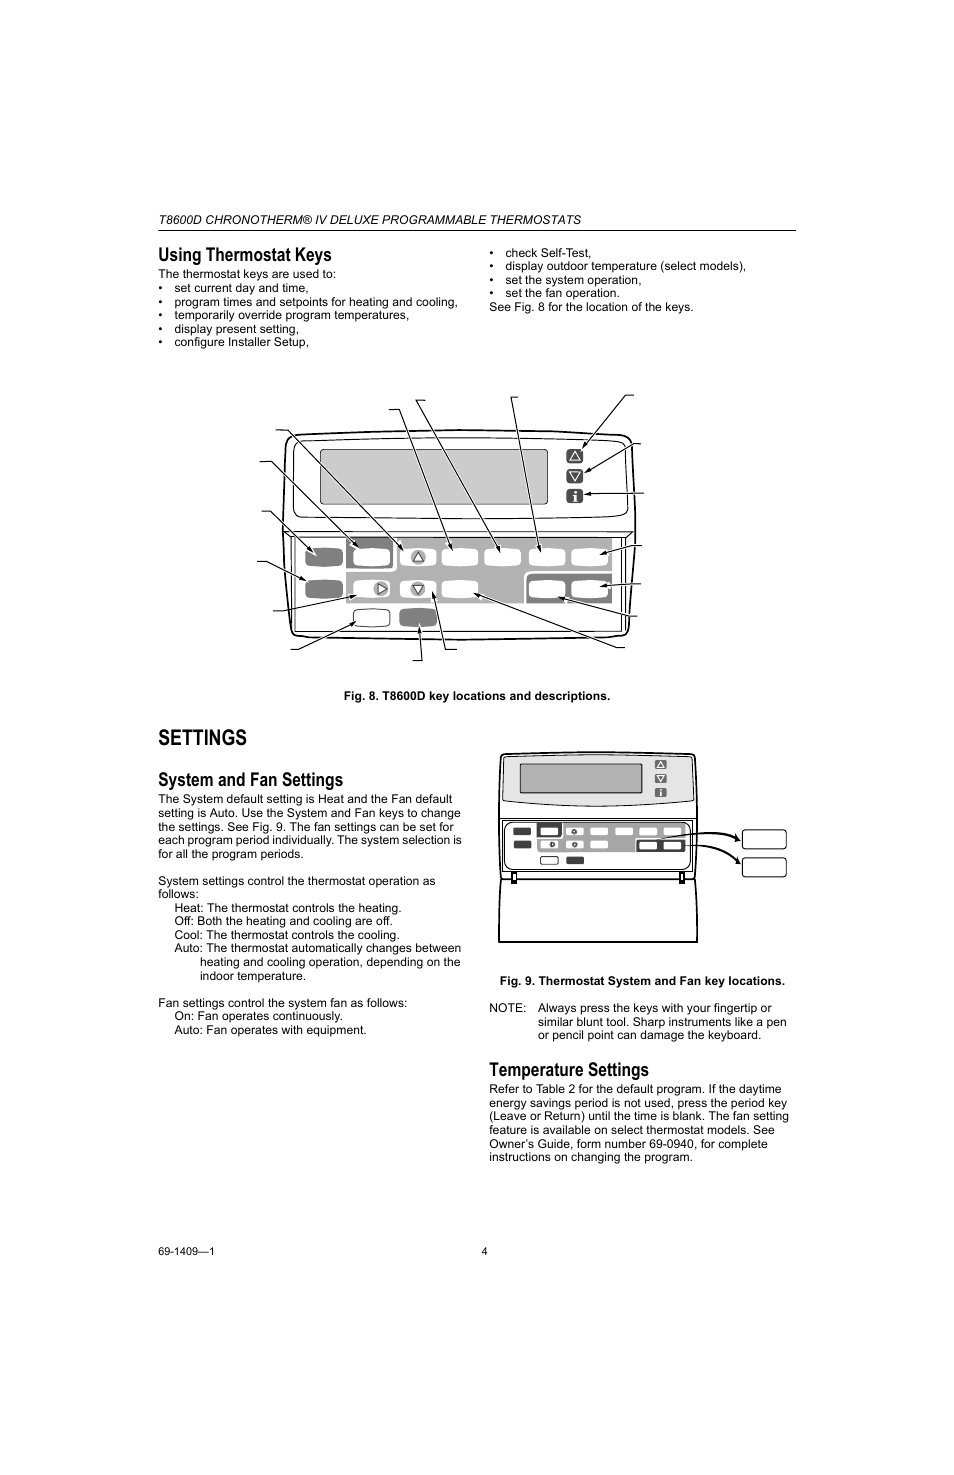 Using thermostat keys, Settings, System and fan settings | Honeywell  Chronotherm IV T8600D User Manual | Page 4 / 12